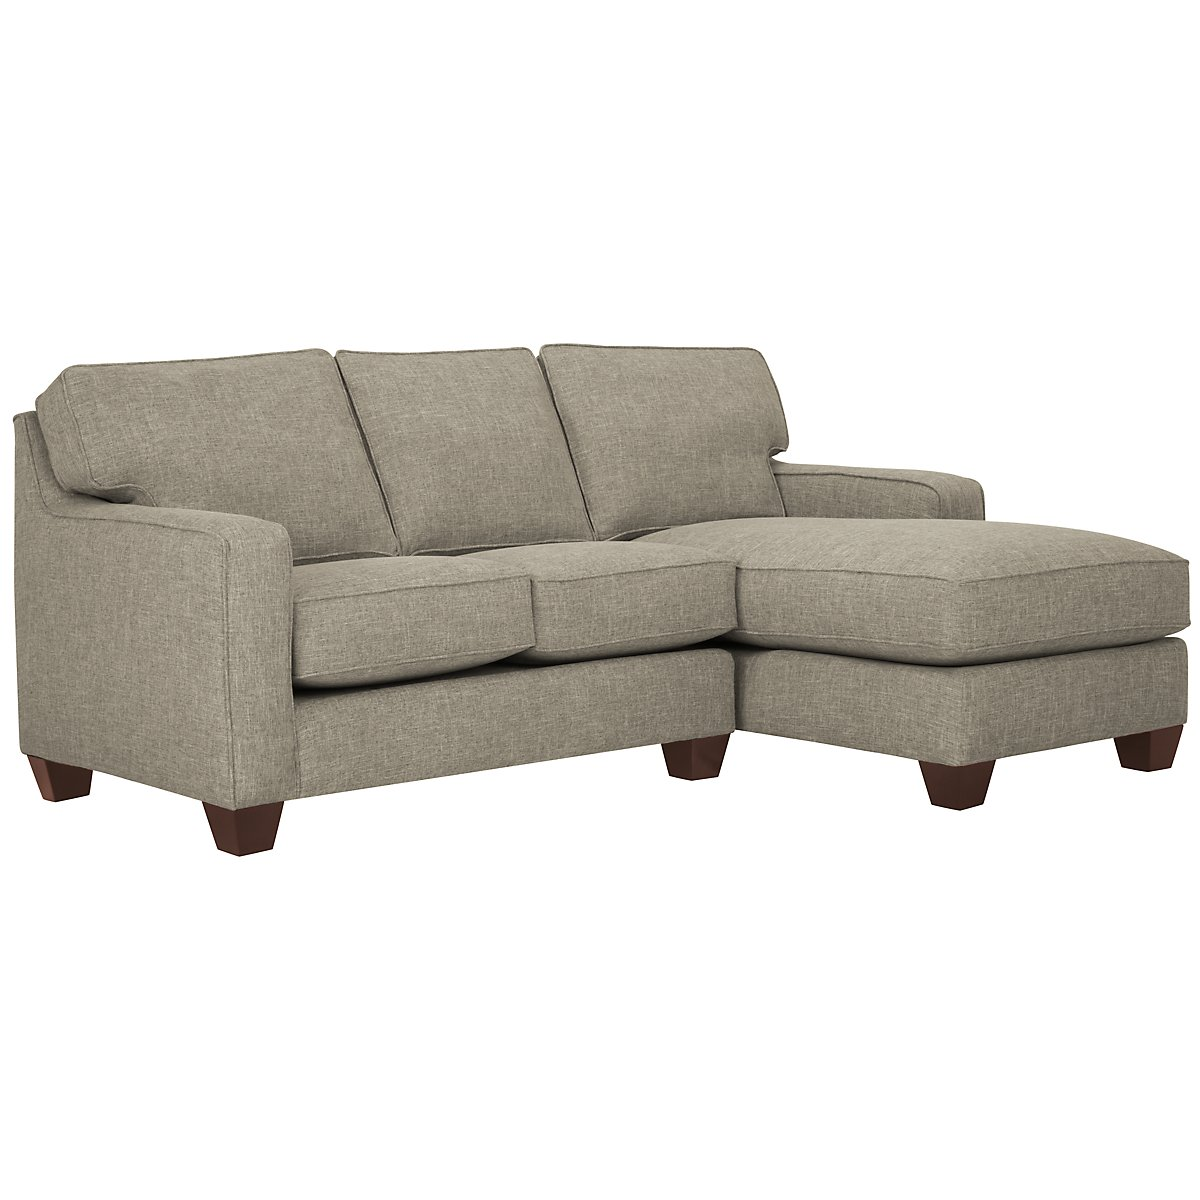 York Pewter Fabric Right Chaise Sectional